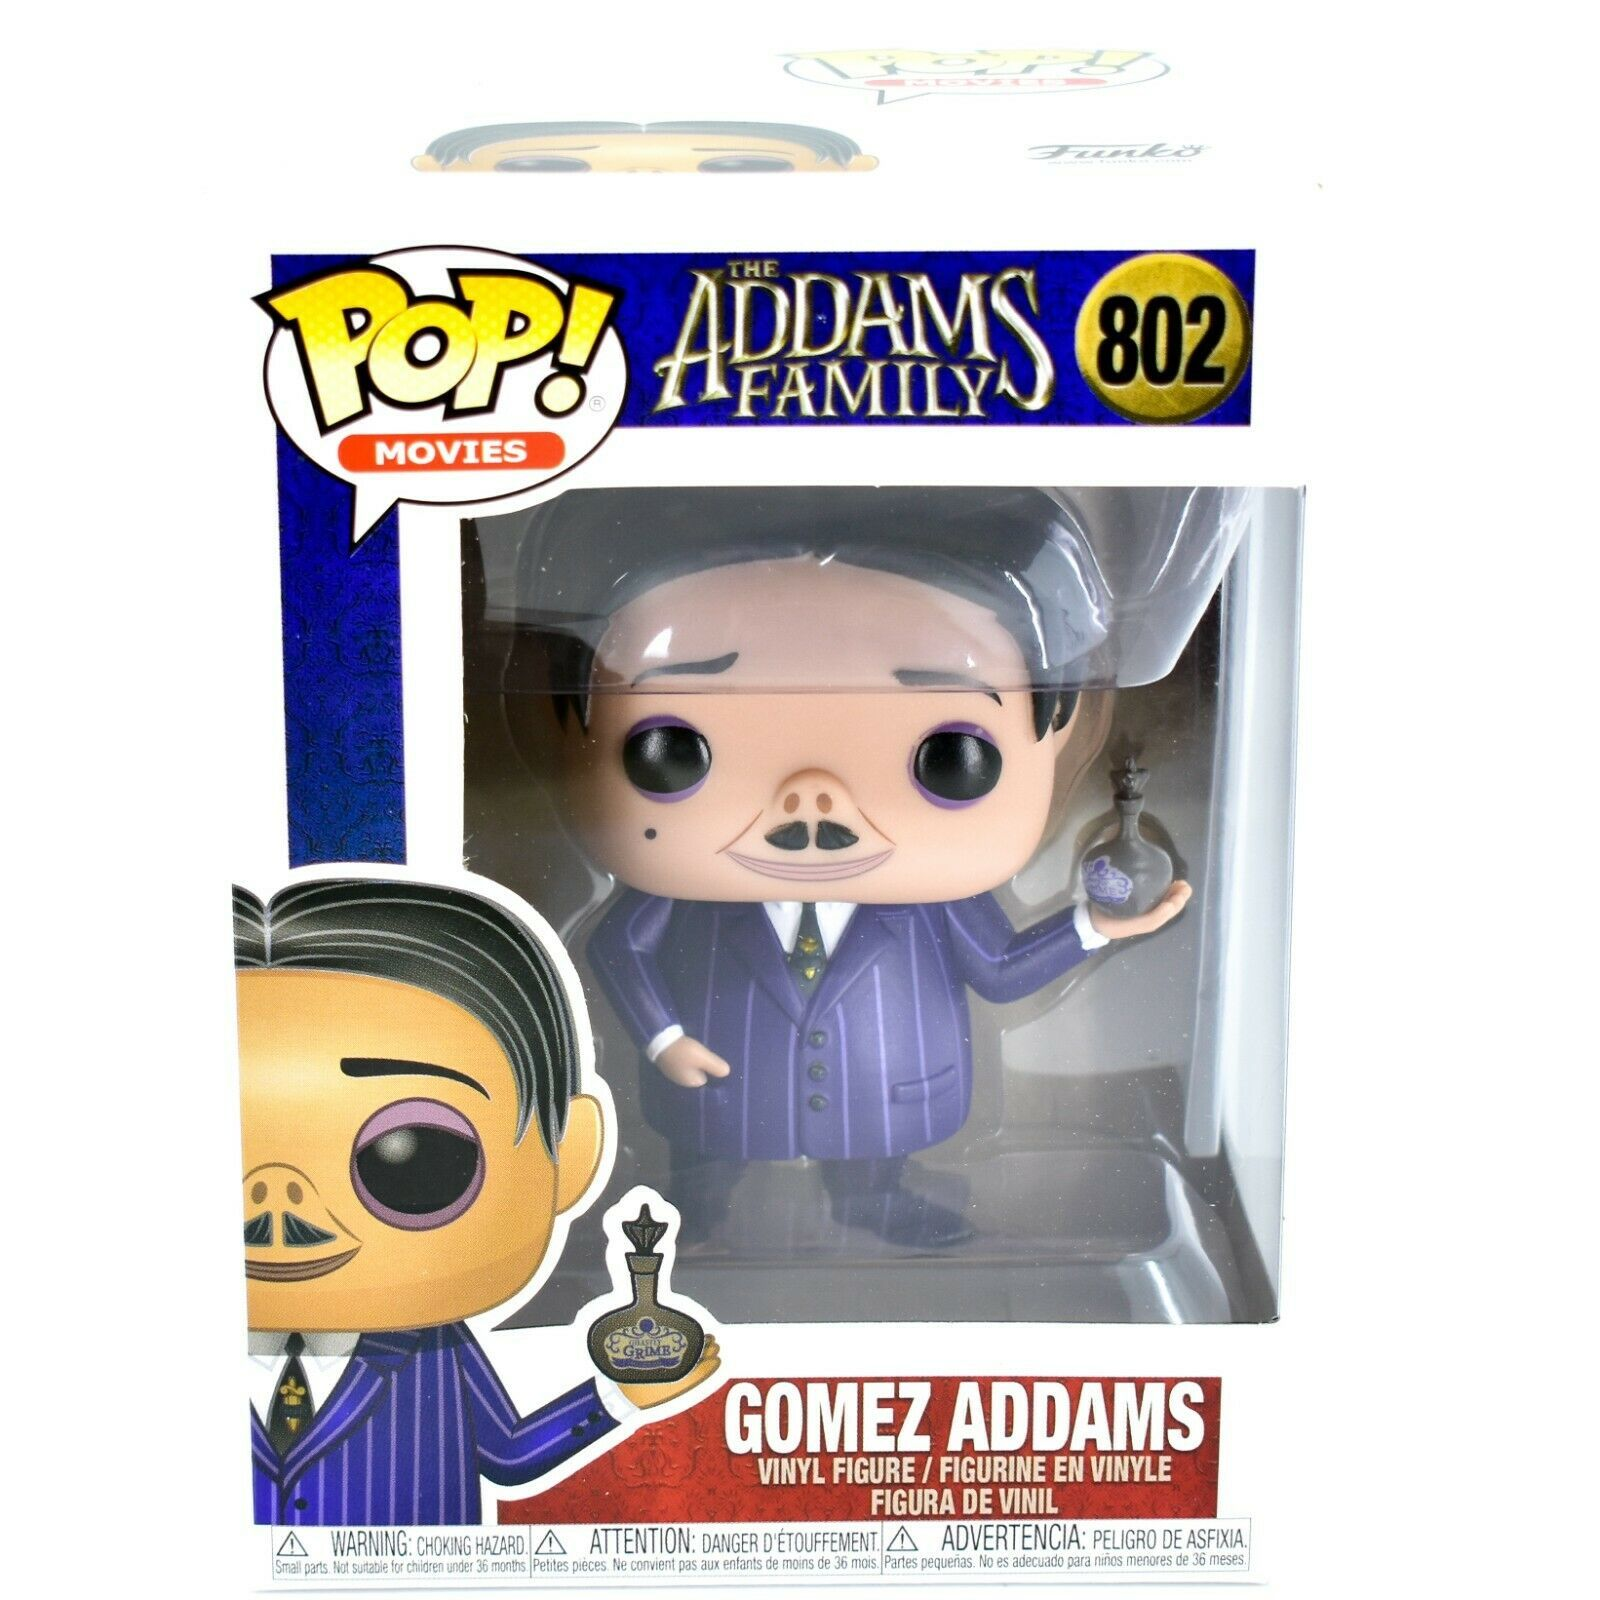 Funko Pop! Movies The Addams Family Gomez Addams #802 Vinyl Figure